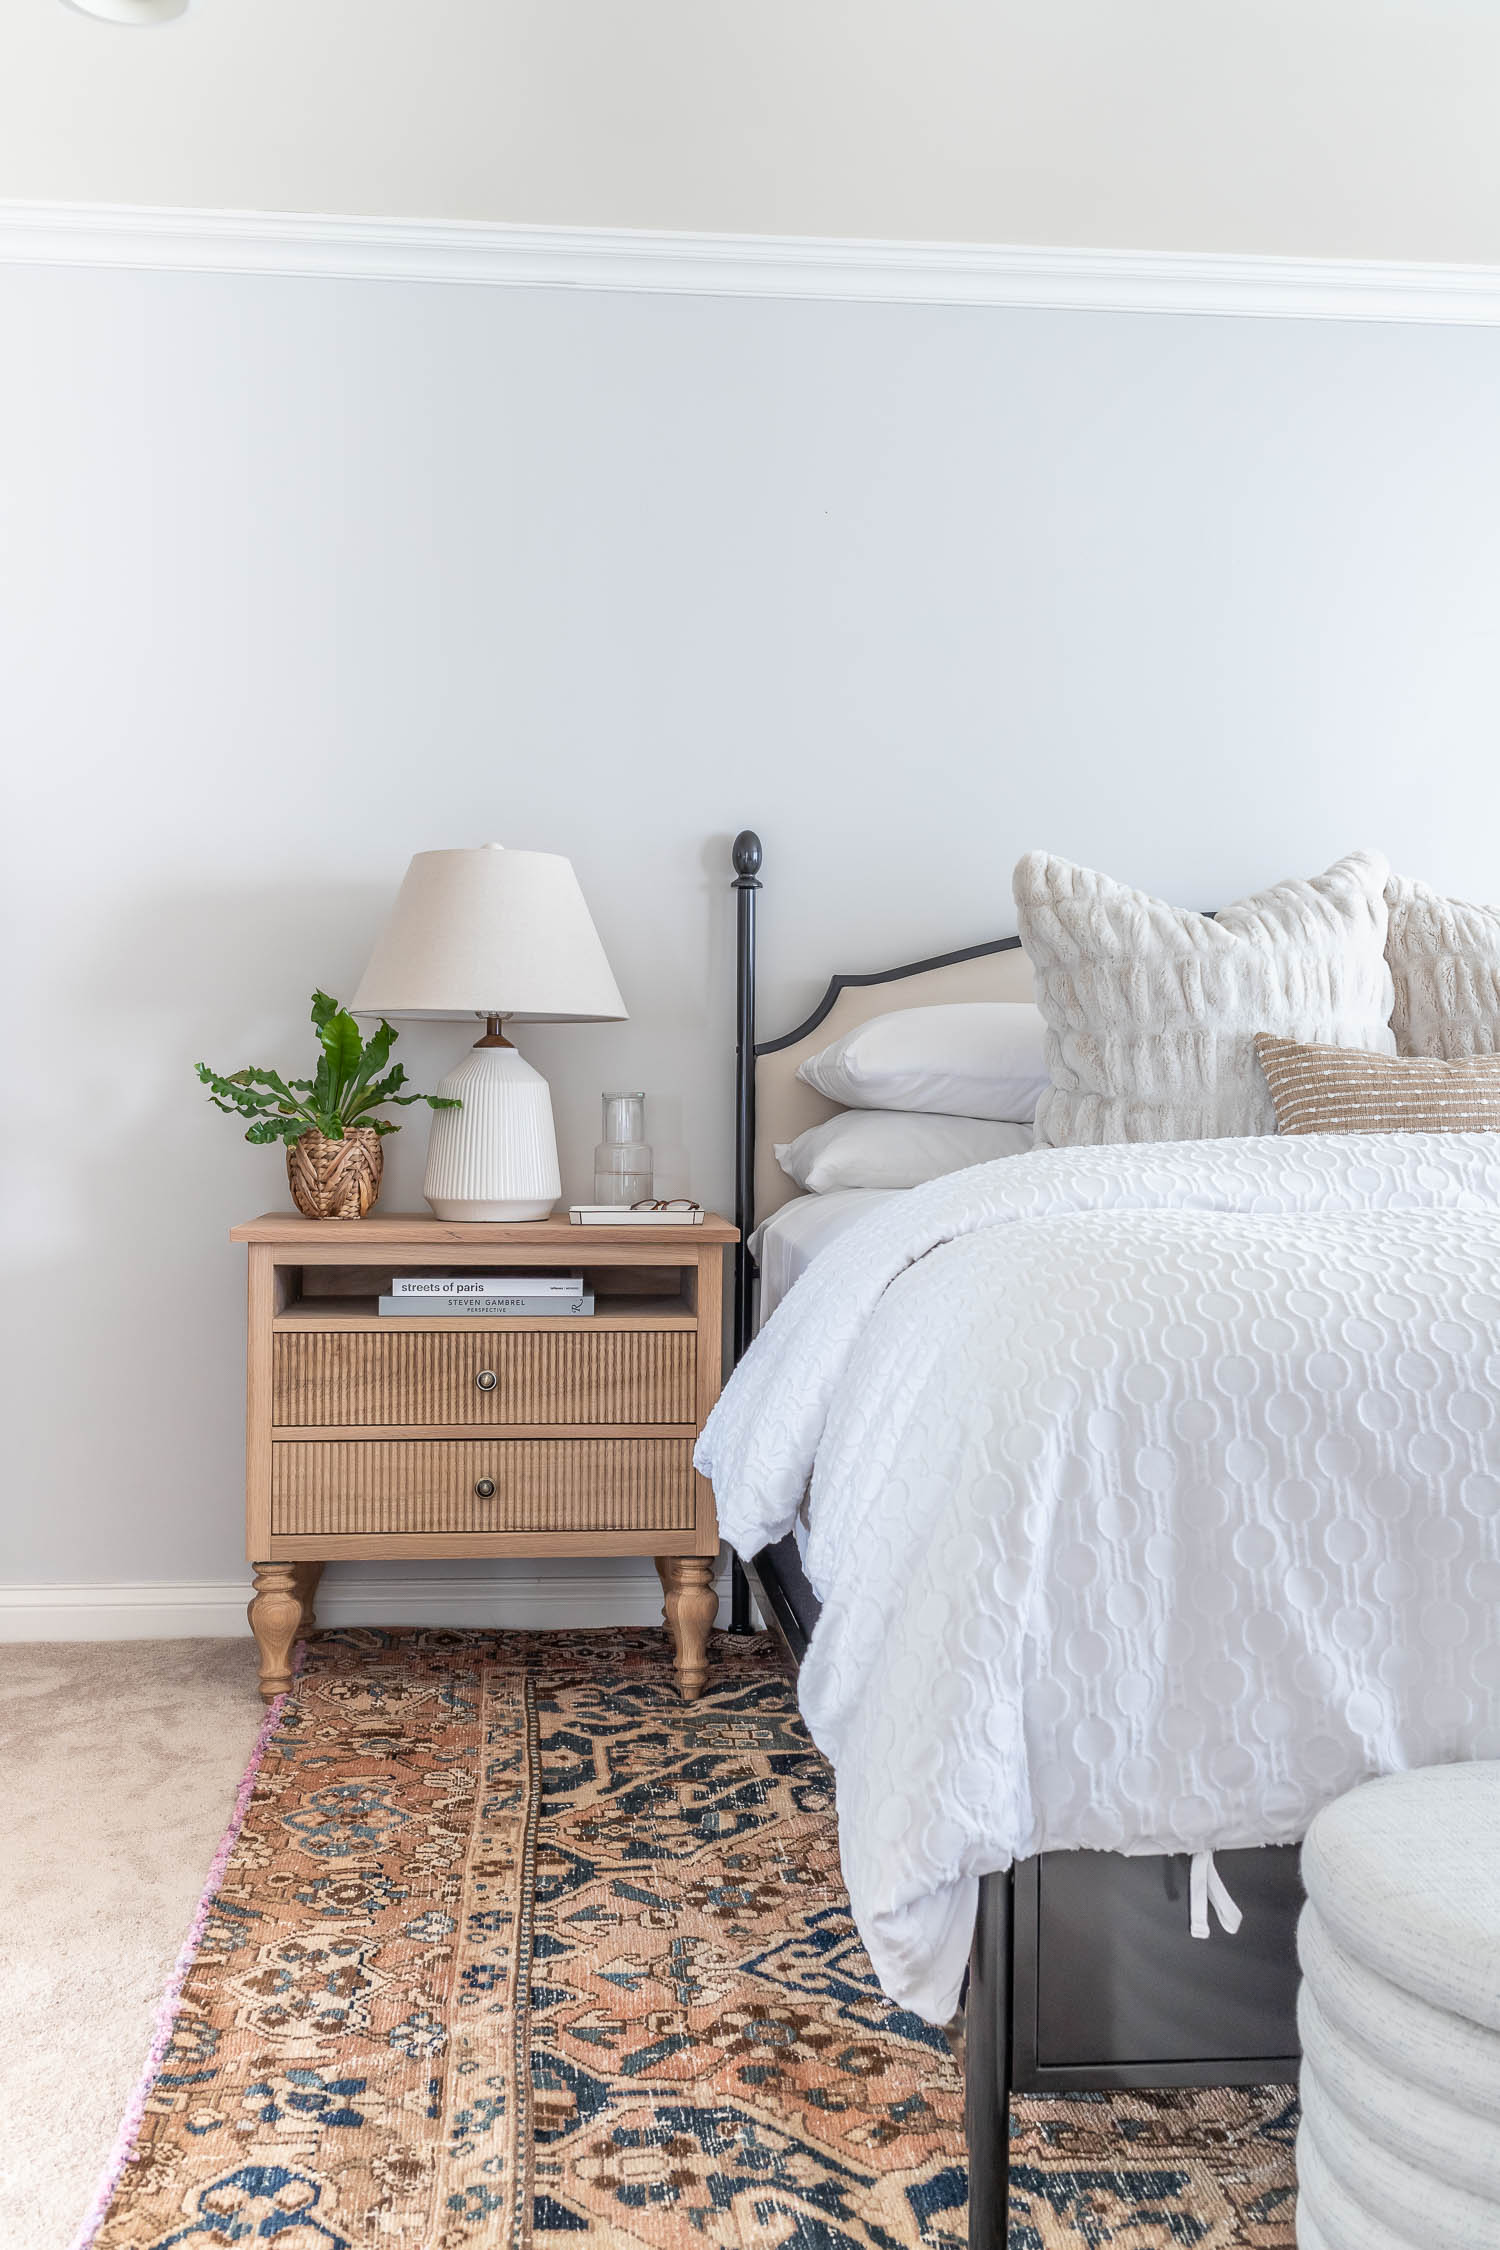 How to build DIY nightstands - beautiful French bedside tables from white oak